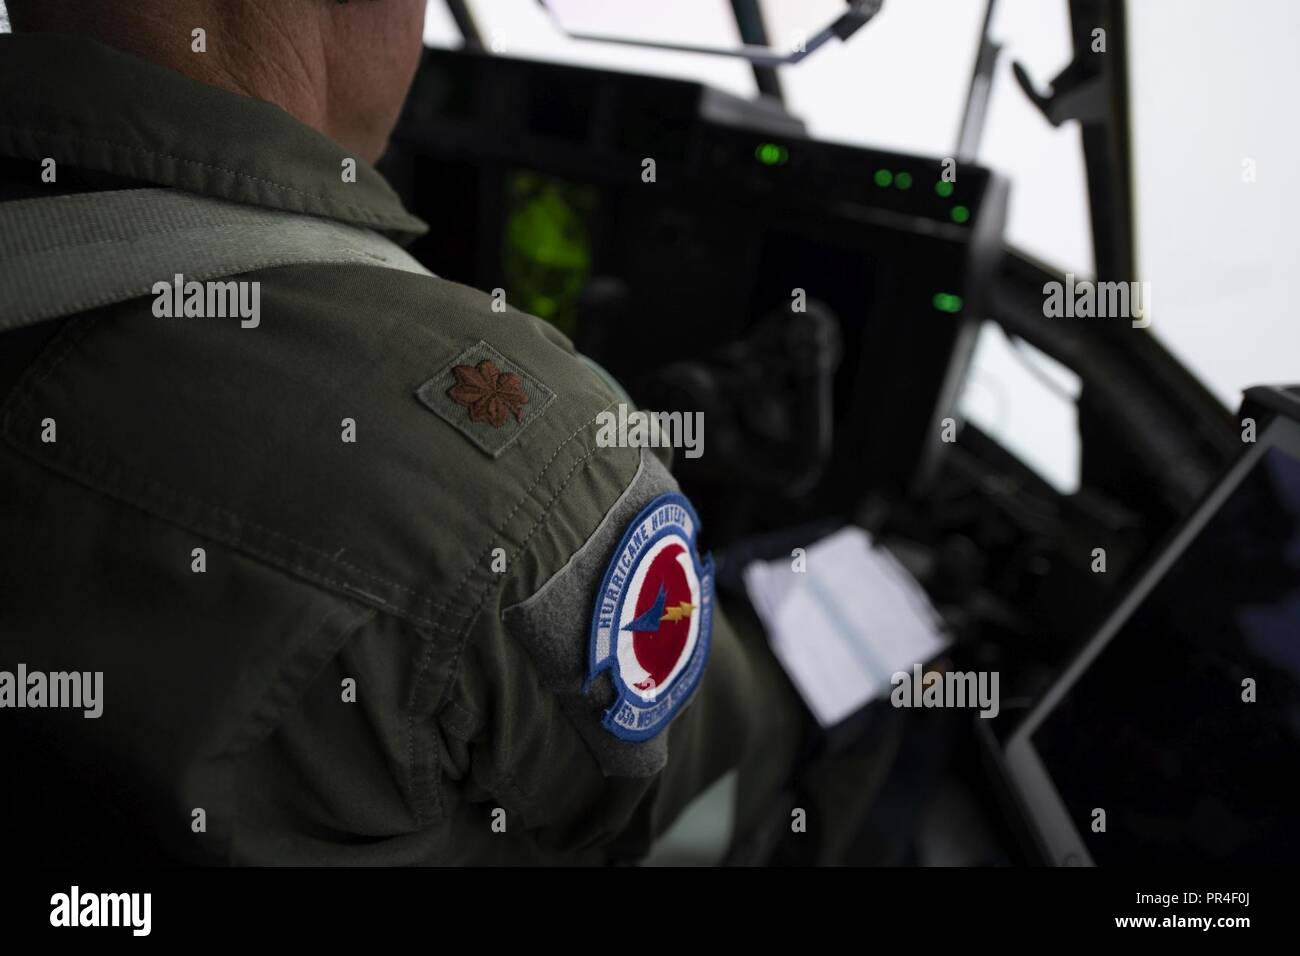 The Hurricane Hunter patch on the right arm of Major Stephen Pituch. The HC-130J that he flys took off from Savanah Air National Guard Base, Savanah, GA Airport, September 12, 2018. The U.S. Air Force Reserve 53rd Weather Reconnaissance Squadron, or Hurricane Hunters, is conducting a storm tasking mission into Hurricane Florence, currently a category 4 storm. The tasking provides critical and timely weather data for the National Hurricane Center to assist in providing up-to-date and accurate information for storm forecasts. - Stock Image